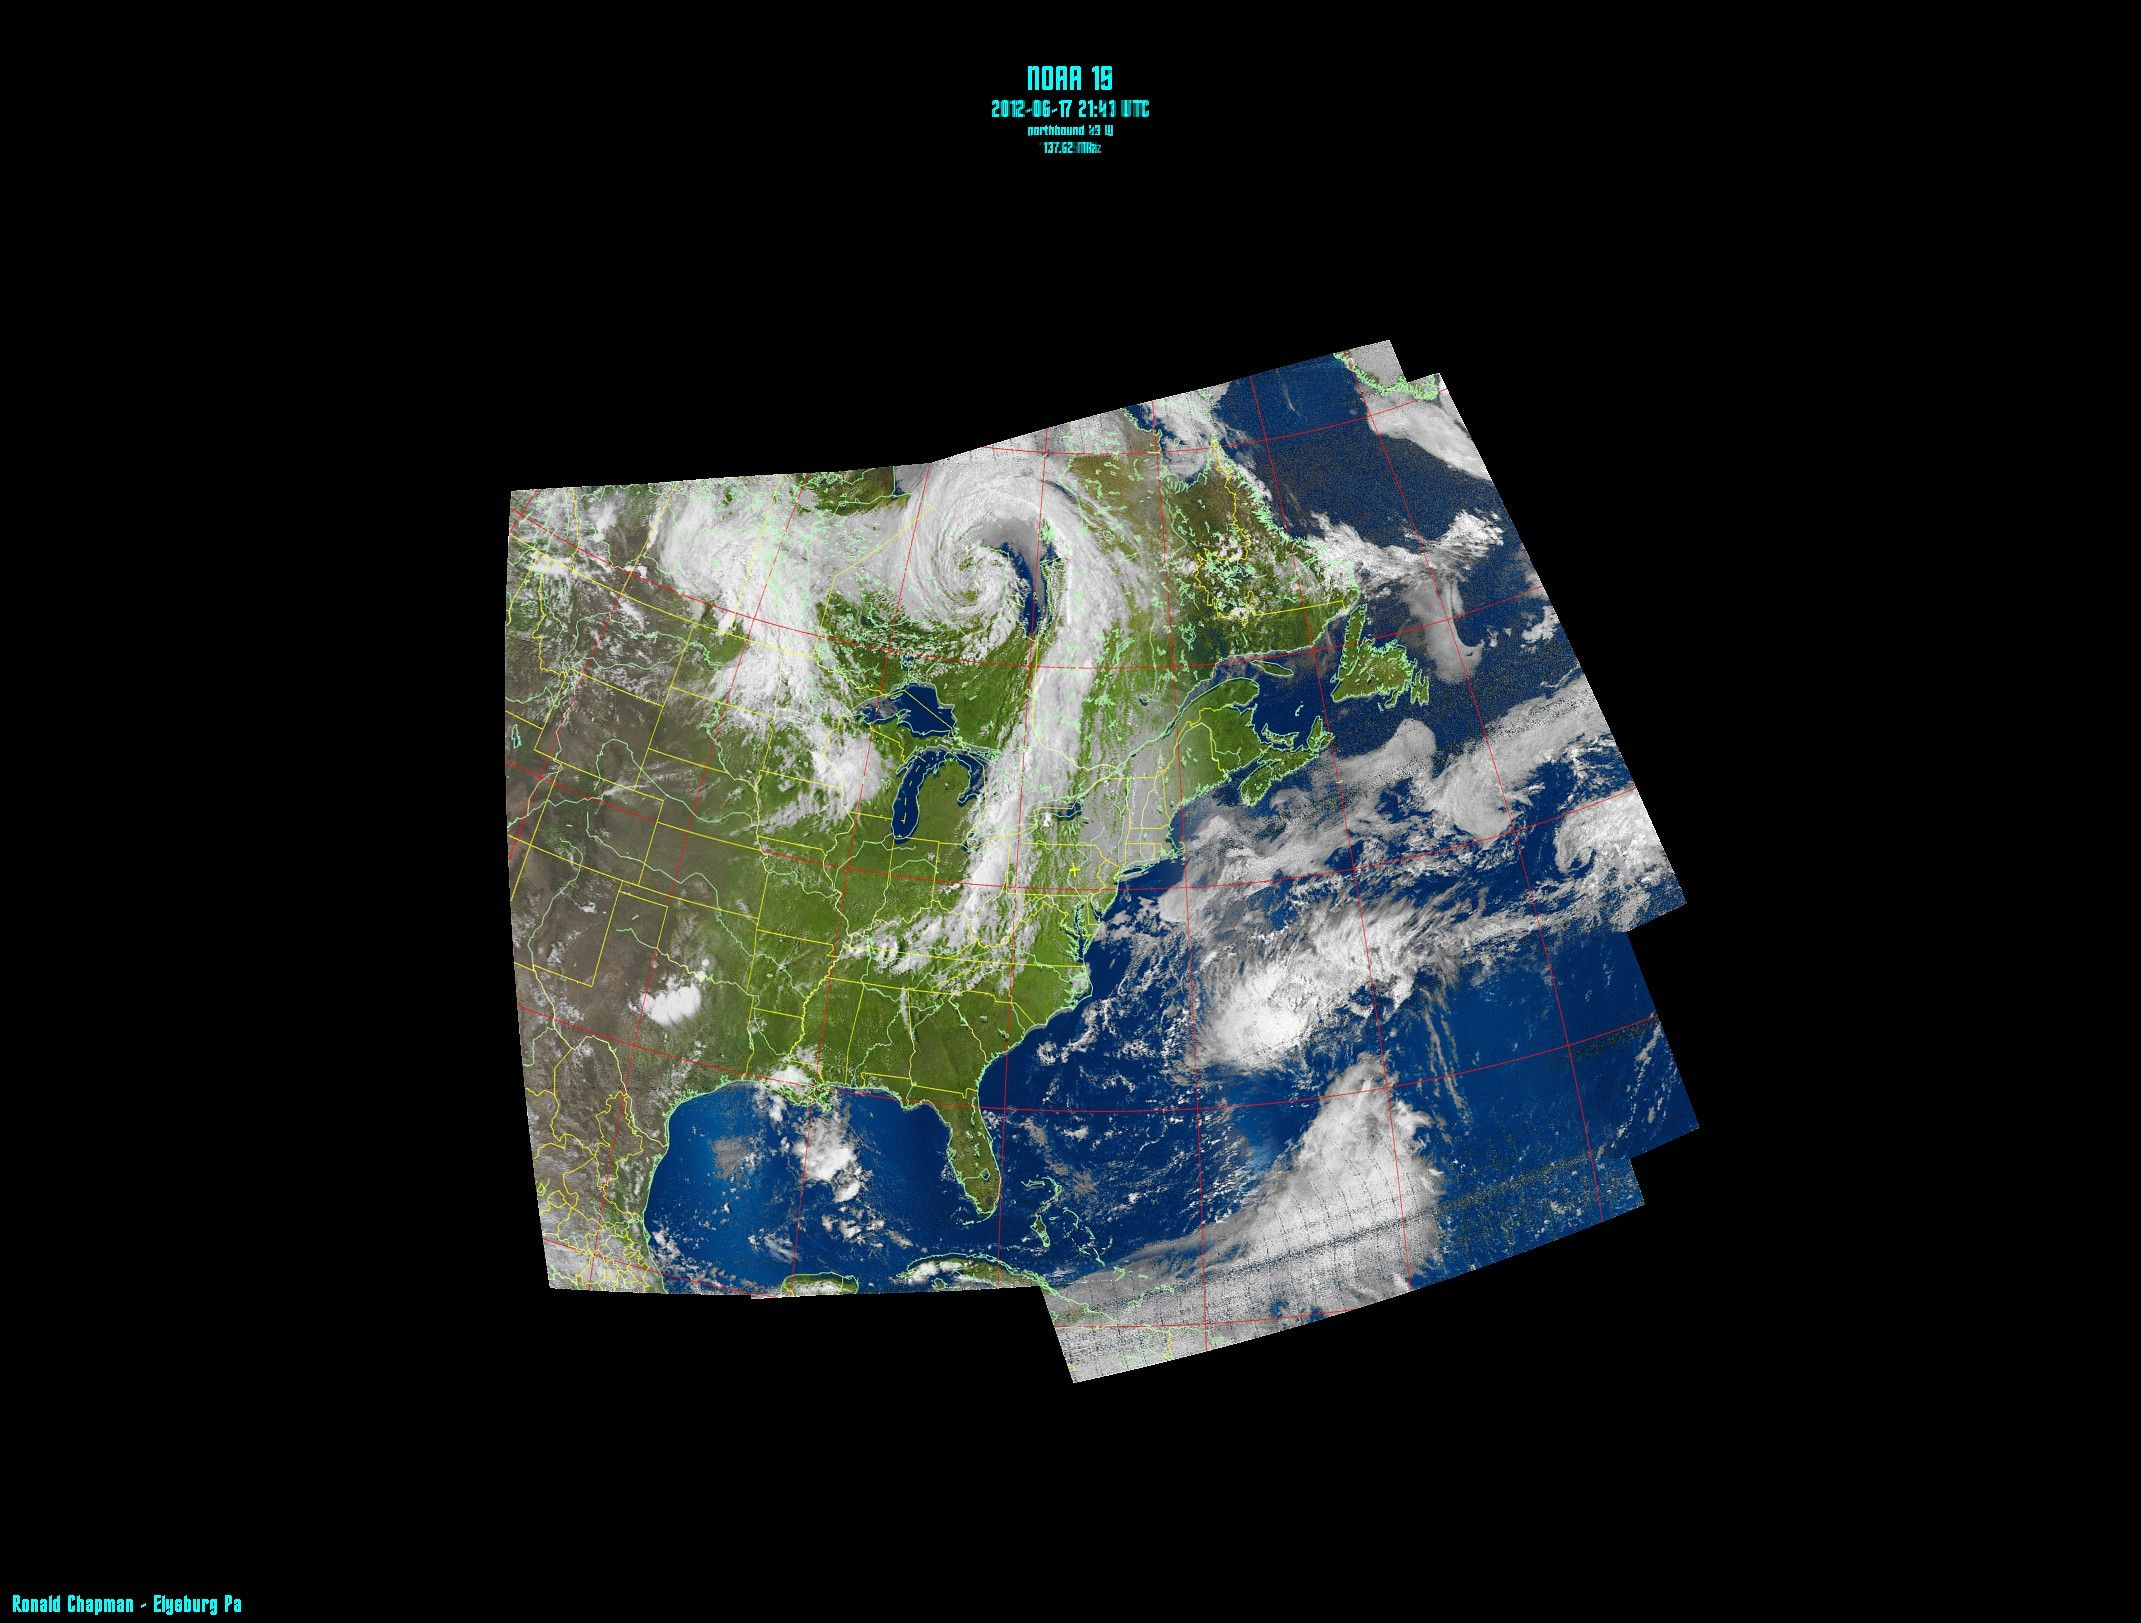 This Is A Composite NOAA Weather Satellite Image I - World satellite view real time